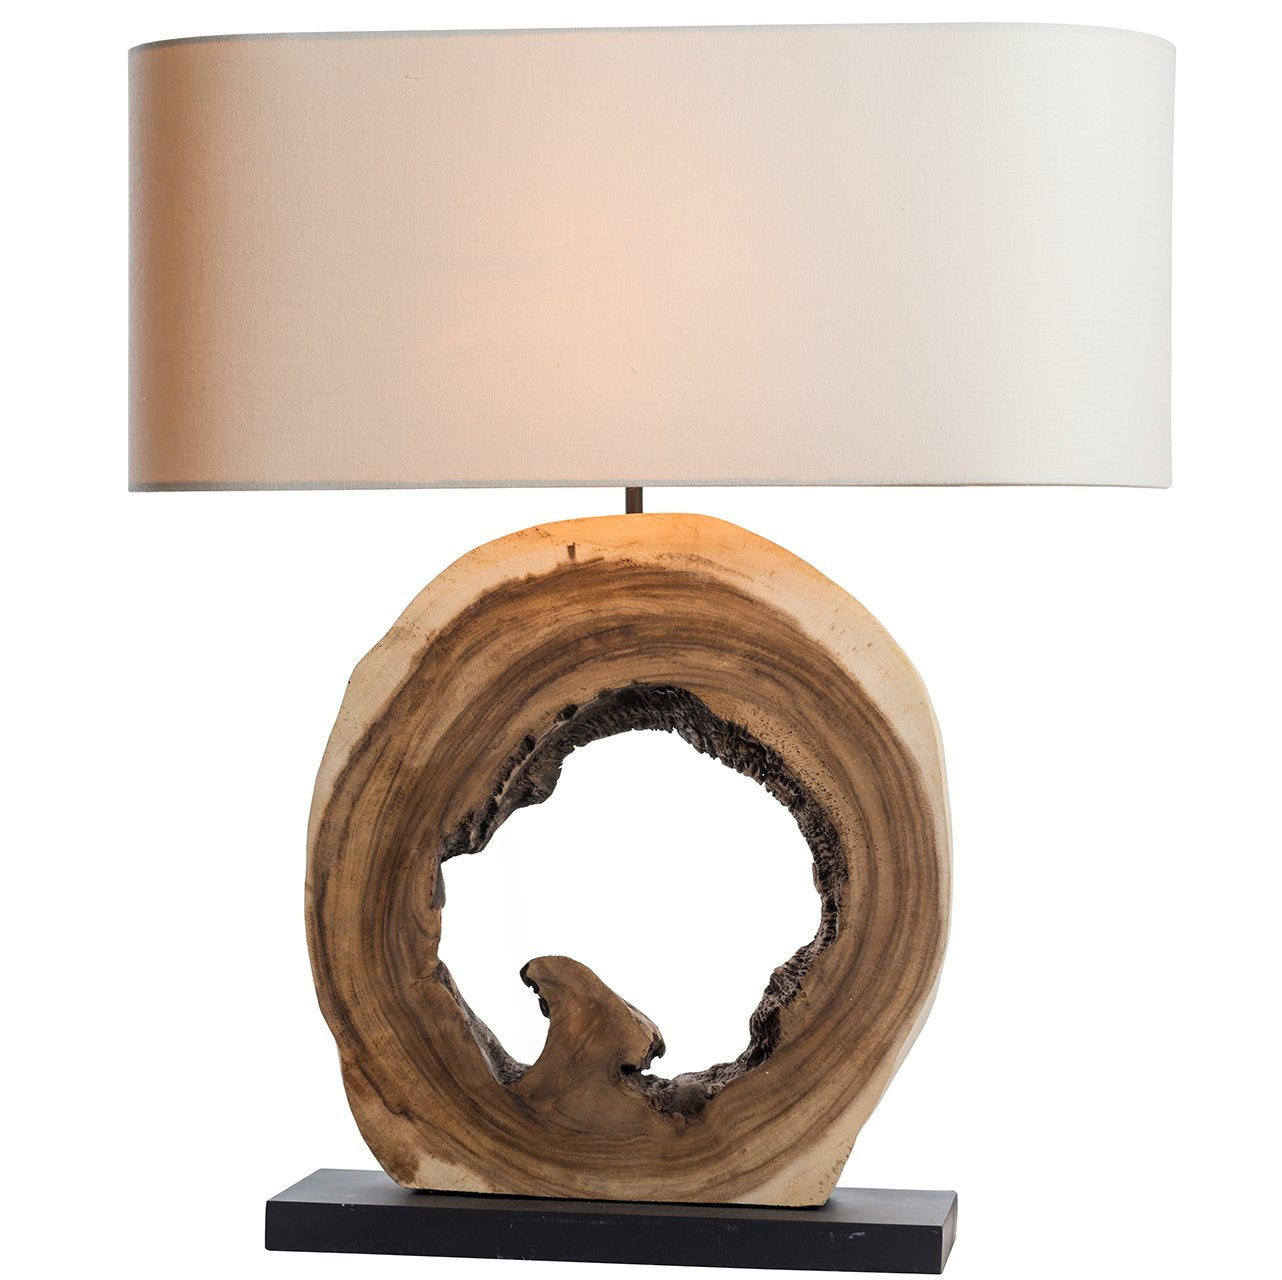 'Nature's Own' Hollow Driftwood Lamp - O'THENTIQUE